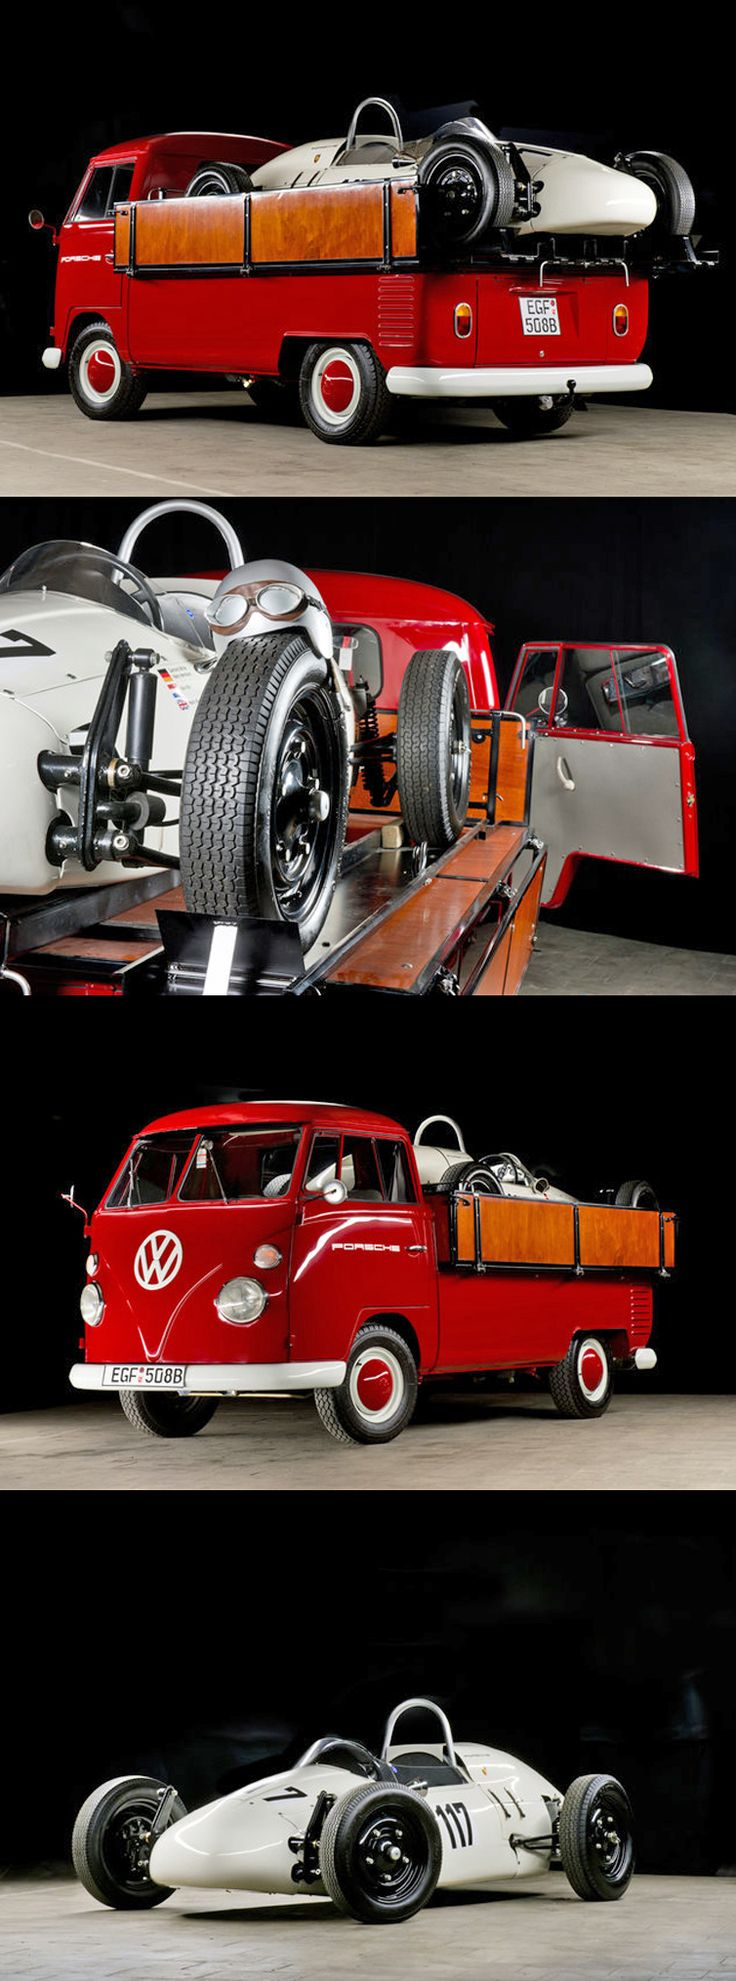 1964 Volkswagen Bulli Transporter with a Porsche Formula V-3 Race Car on the back (VW camper / bus / campervan / van)...Brought to you by Agents of #CarInsurance at #HouseofinsuranceEugene